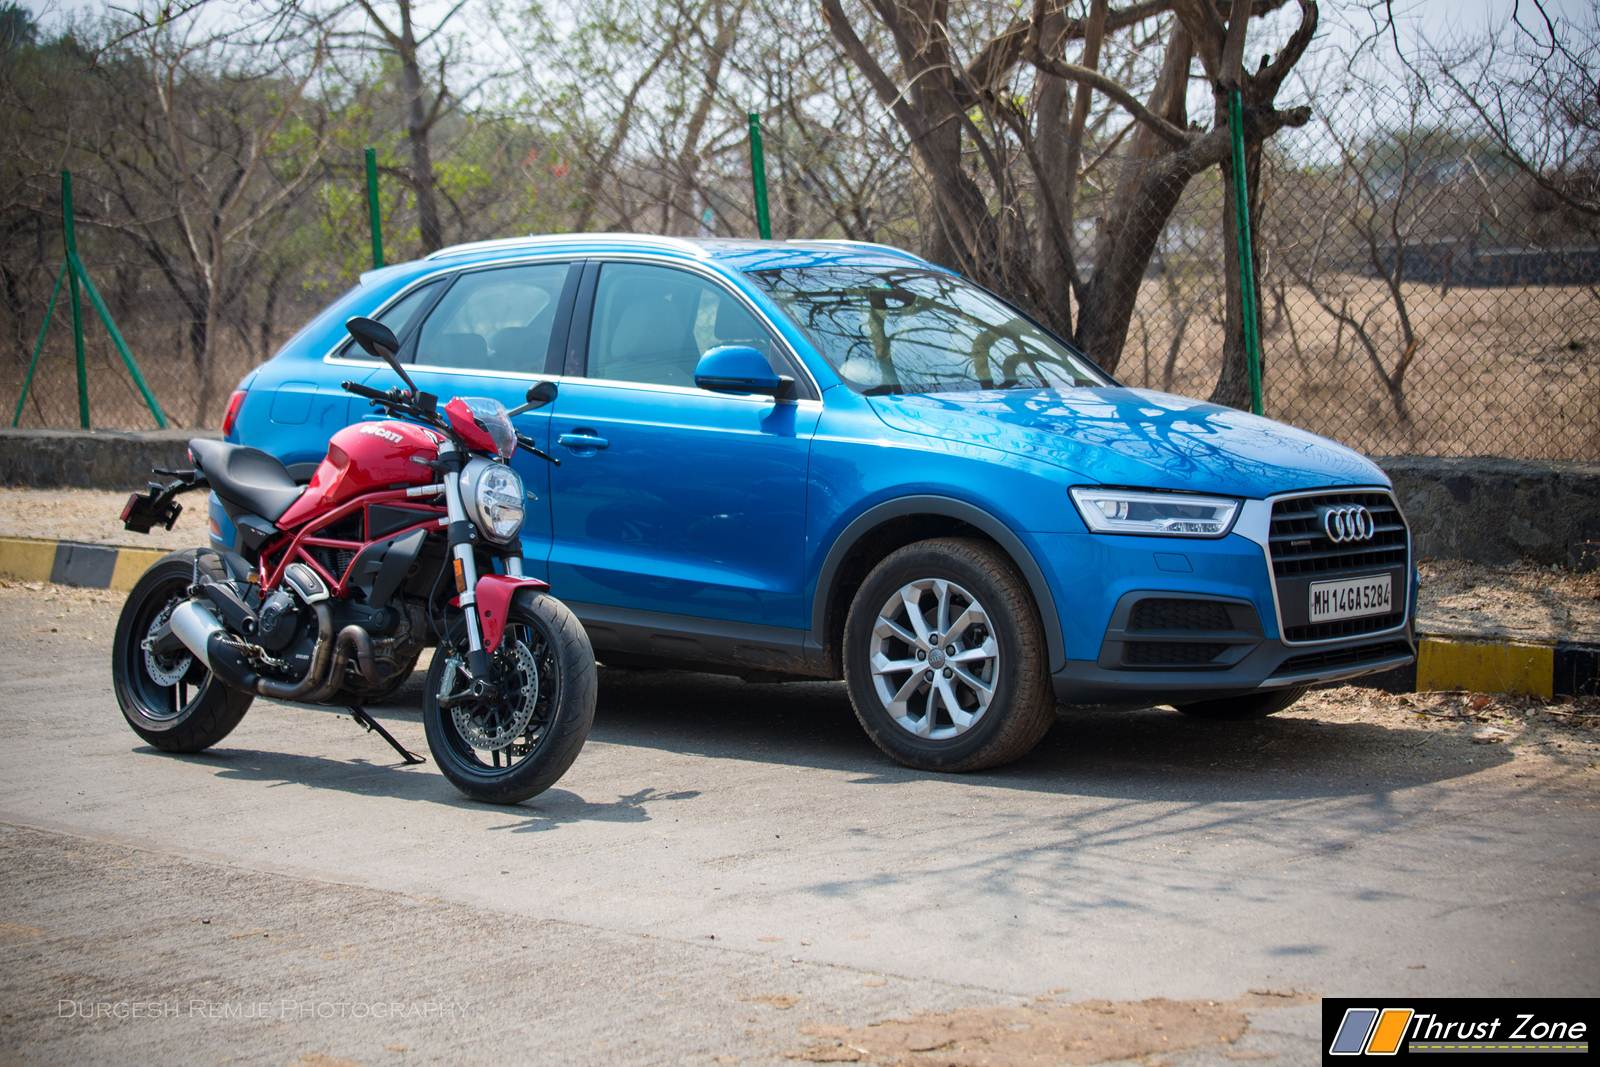 2018 Ducati Monster 797 India Review First Ride